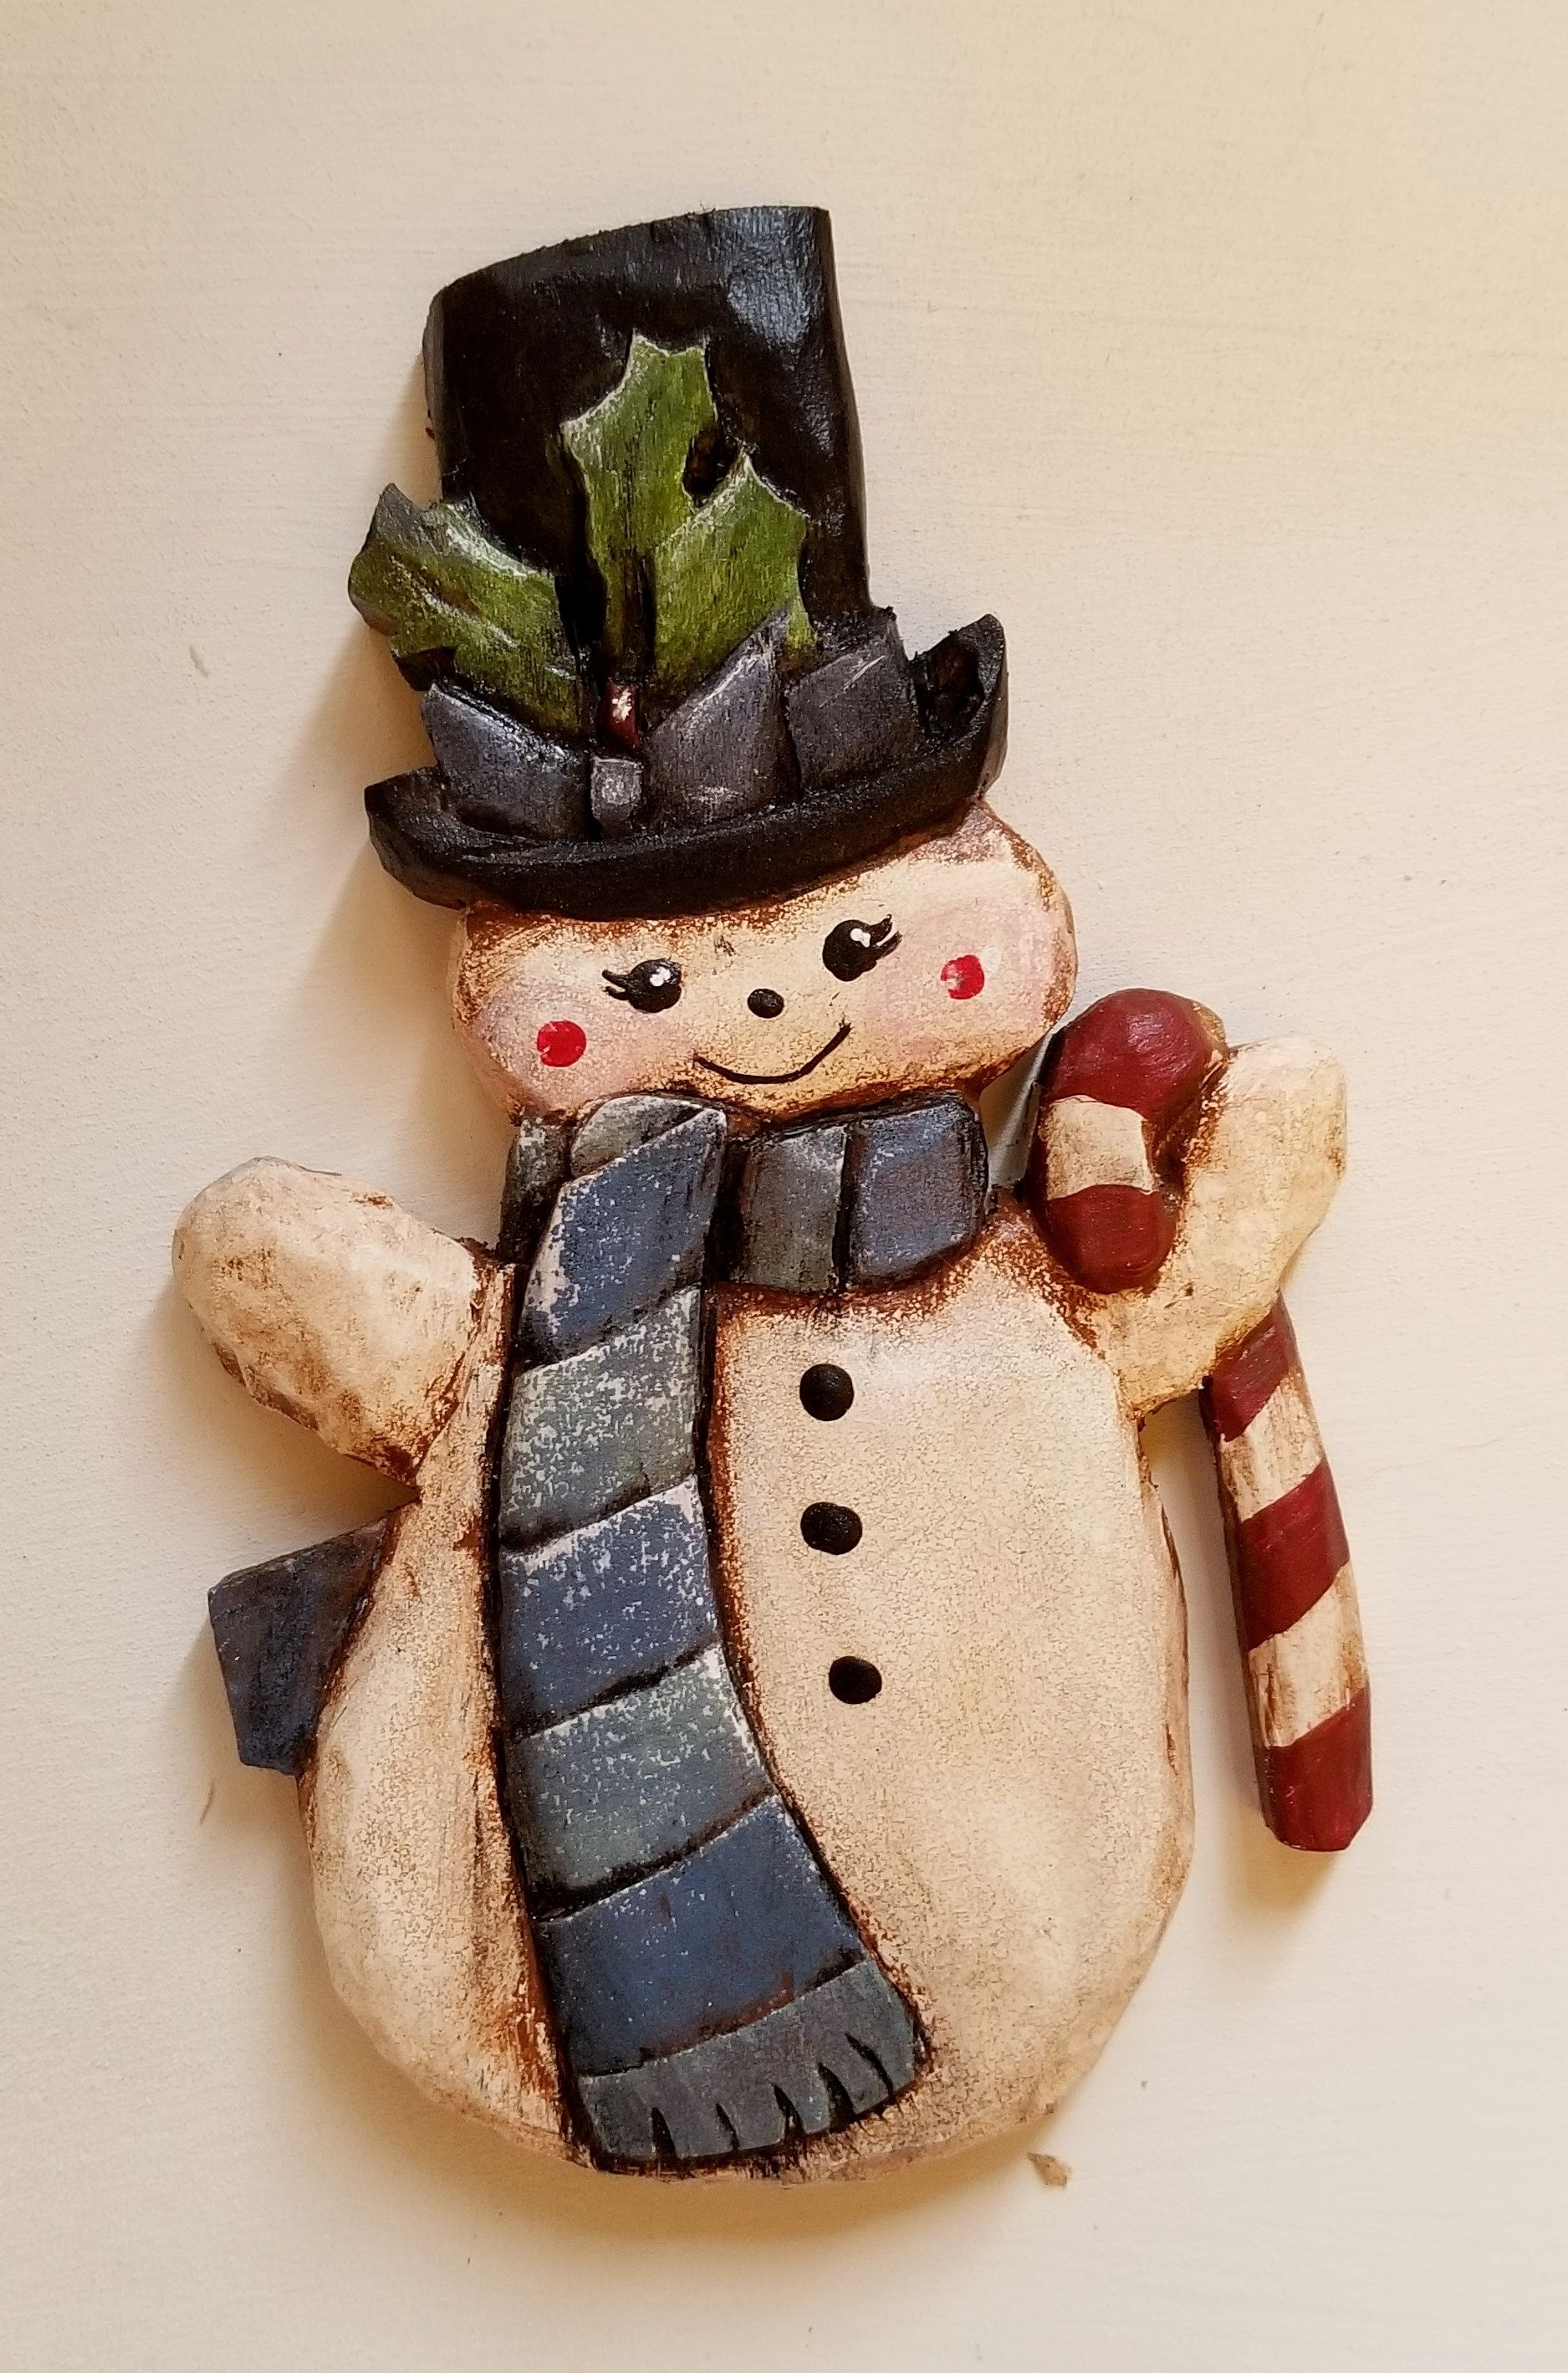 SOLD Handcarved snowman ornament based off a vintage